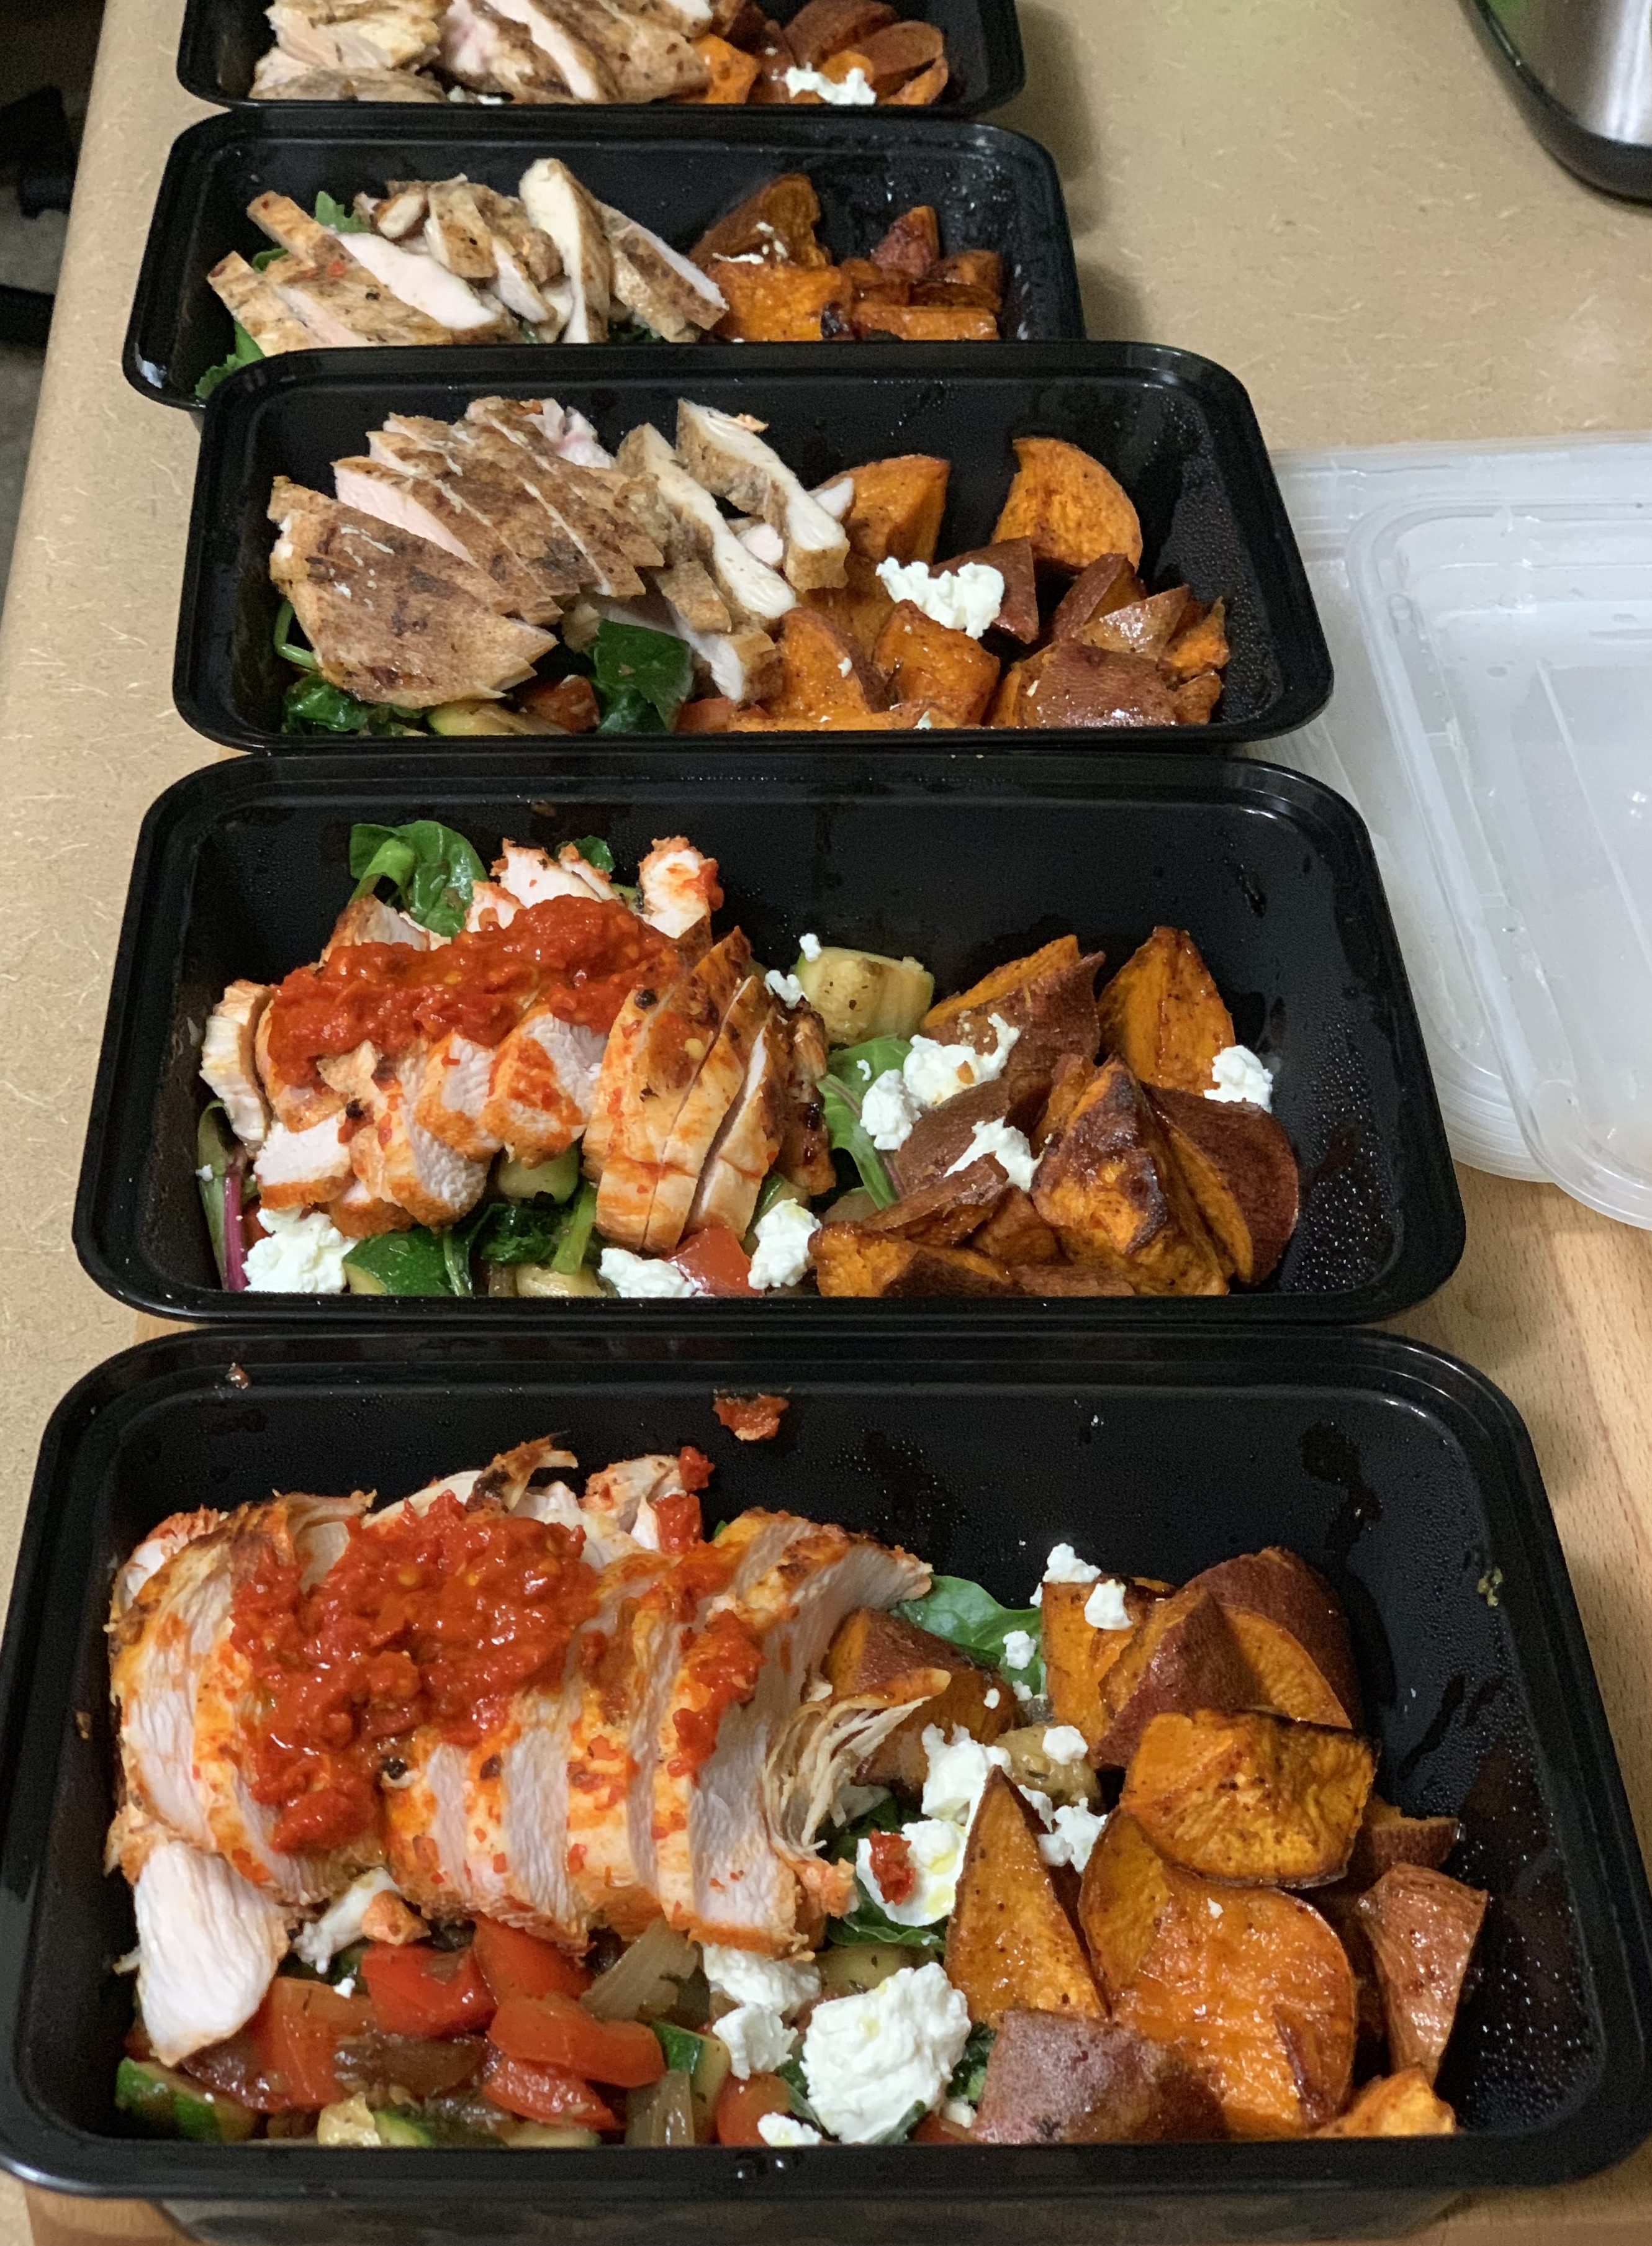 Grilled Harissa Chicken and Grilled Umami seasoned Chicken with vegetable hash and sweet/spicy roasted sweet potatoes, Chicken Taco Lettuce Wraps and Caprese Salad (Ingredients from Trader Joe's)